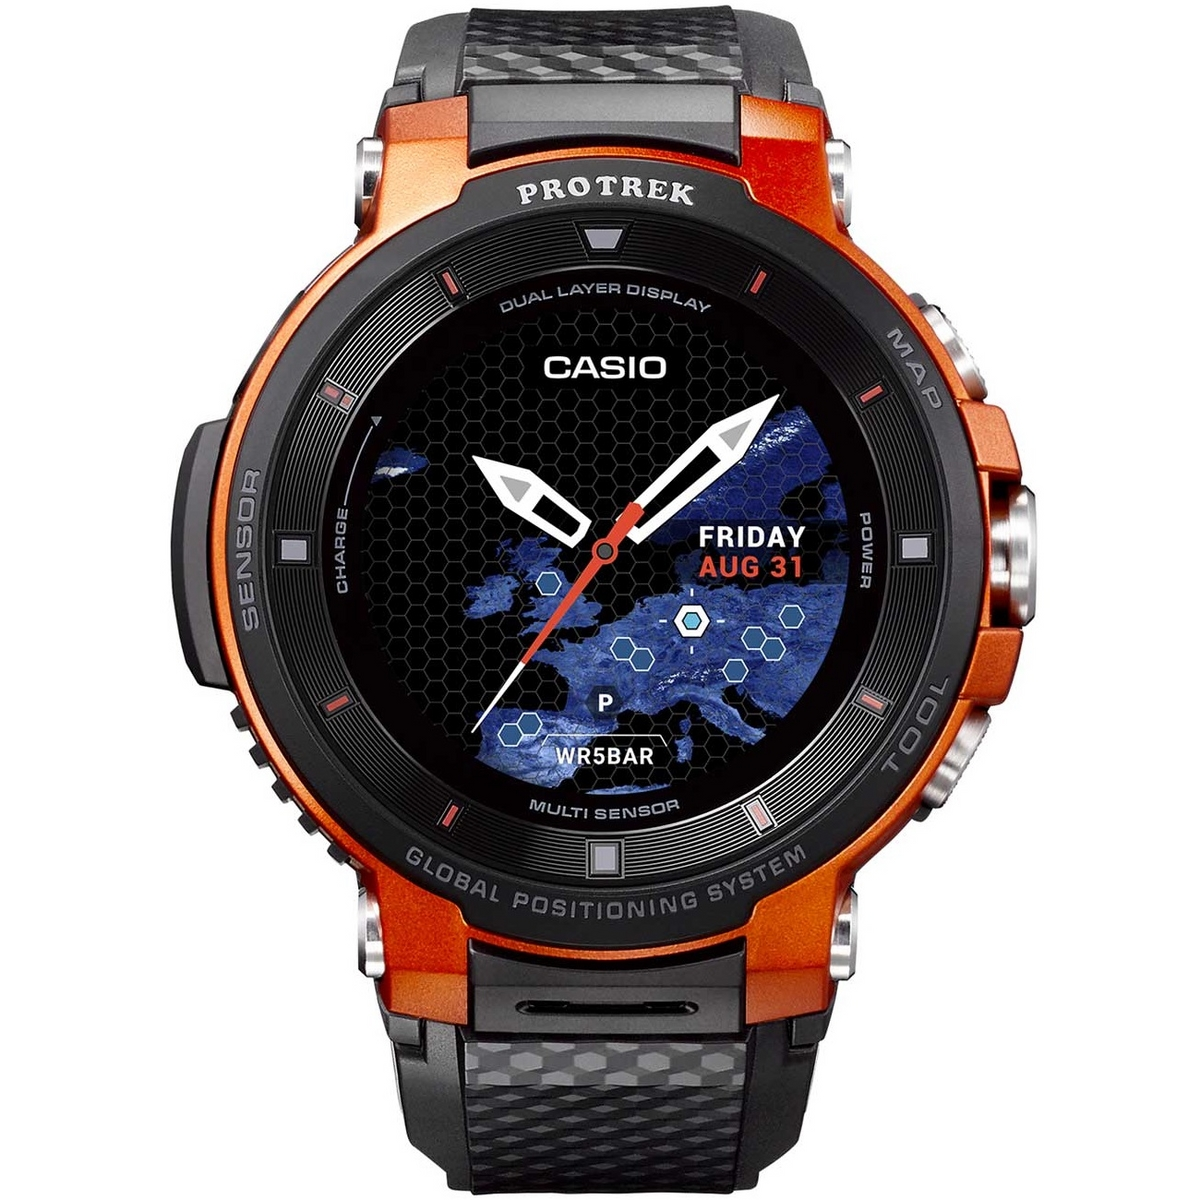 Casio Pro Trek WSD-F30-RG Outdoor GPS Smartwatch 54mm